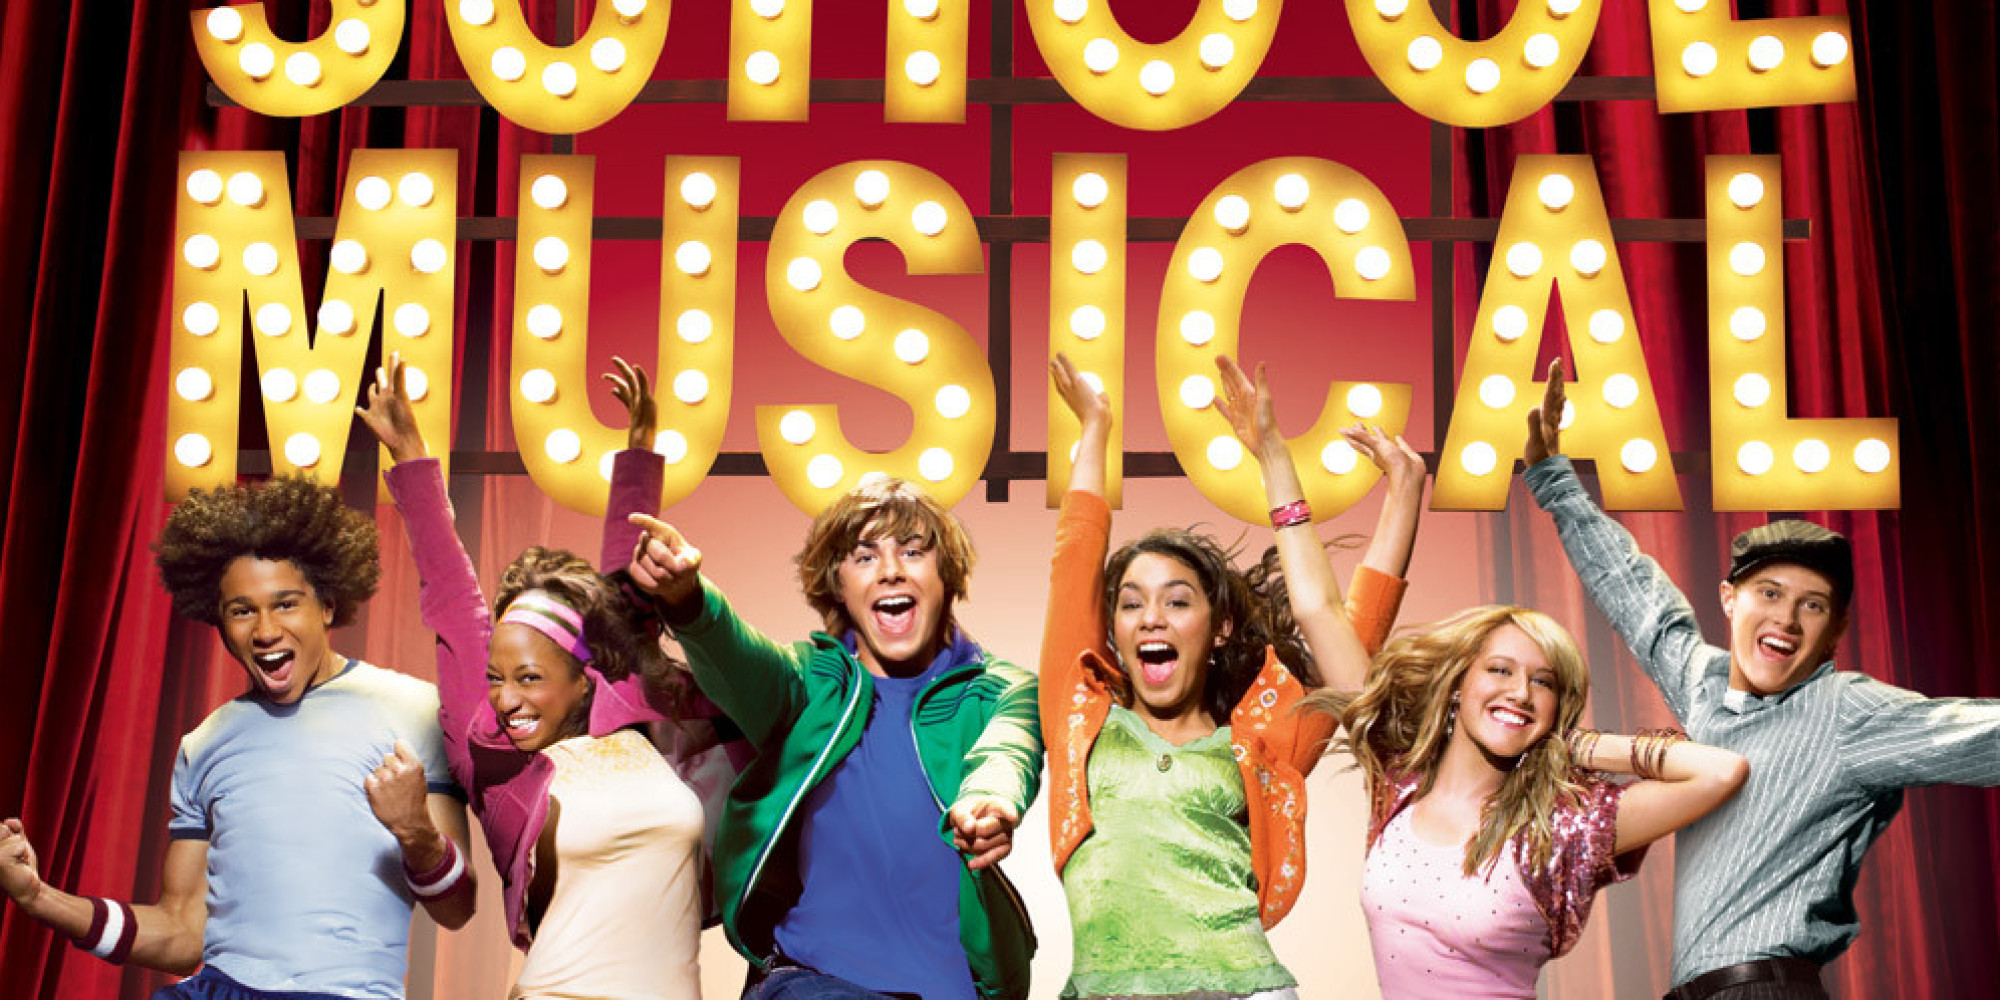 High School Musical turns 10: Here's the 'definitive' ranking of every song from all three films